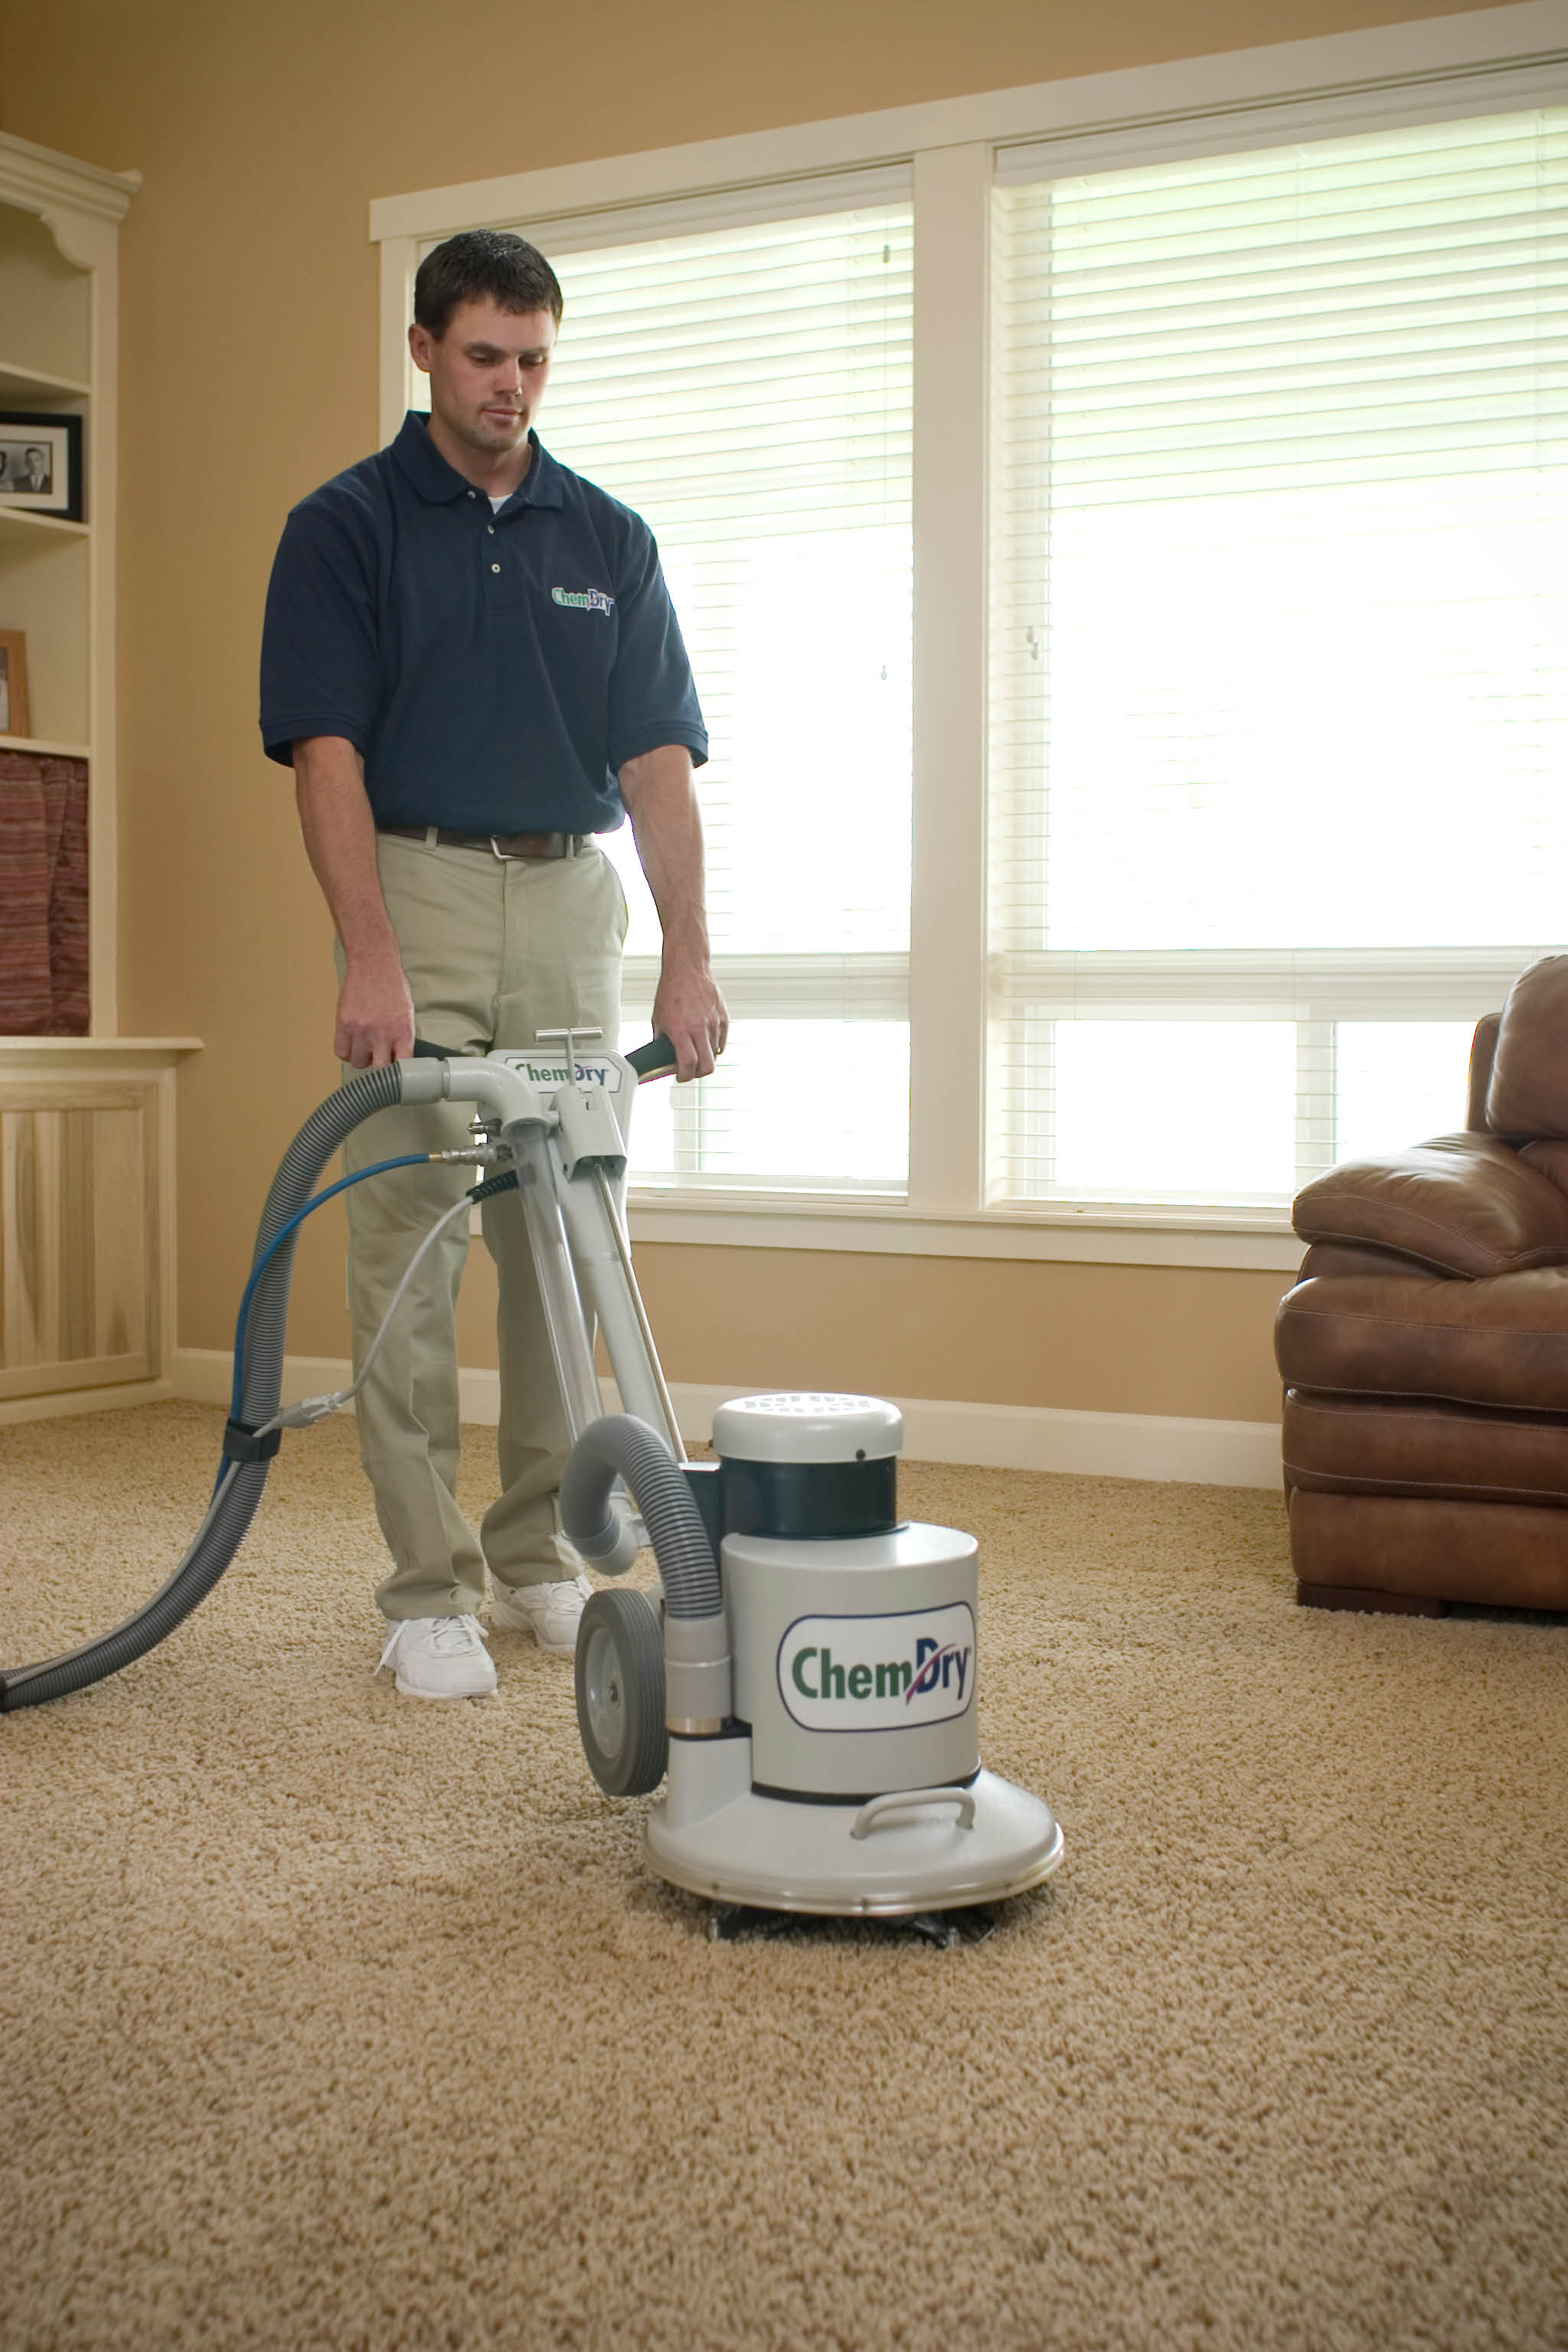 Our proprietary carpet cleaning methods are 100% green